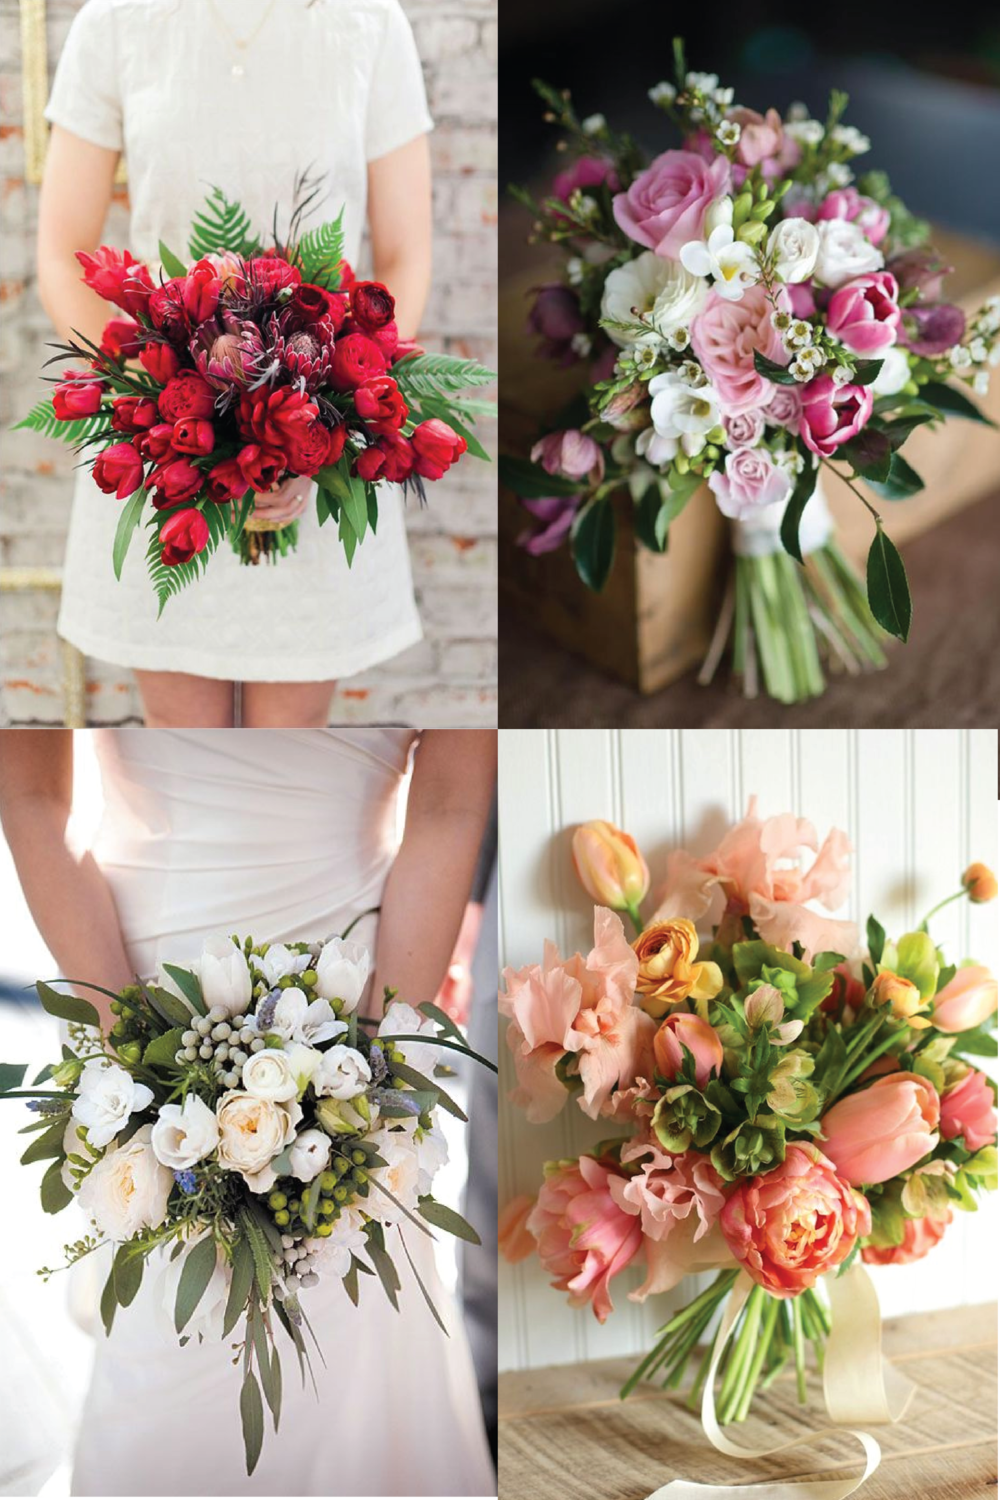 From clockwise, from top left:   photo by  Brittany Lauren ; flowers by  Magdalen Hill  and photo by  Natalie McNally ; flowers by  Love N Fresh Flowers ; flowers by  Kimball Floral  and photo by  Tracy Carolyn .